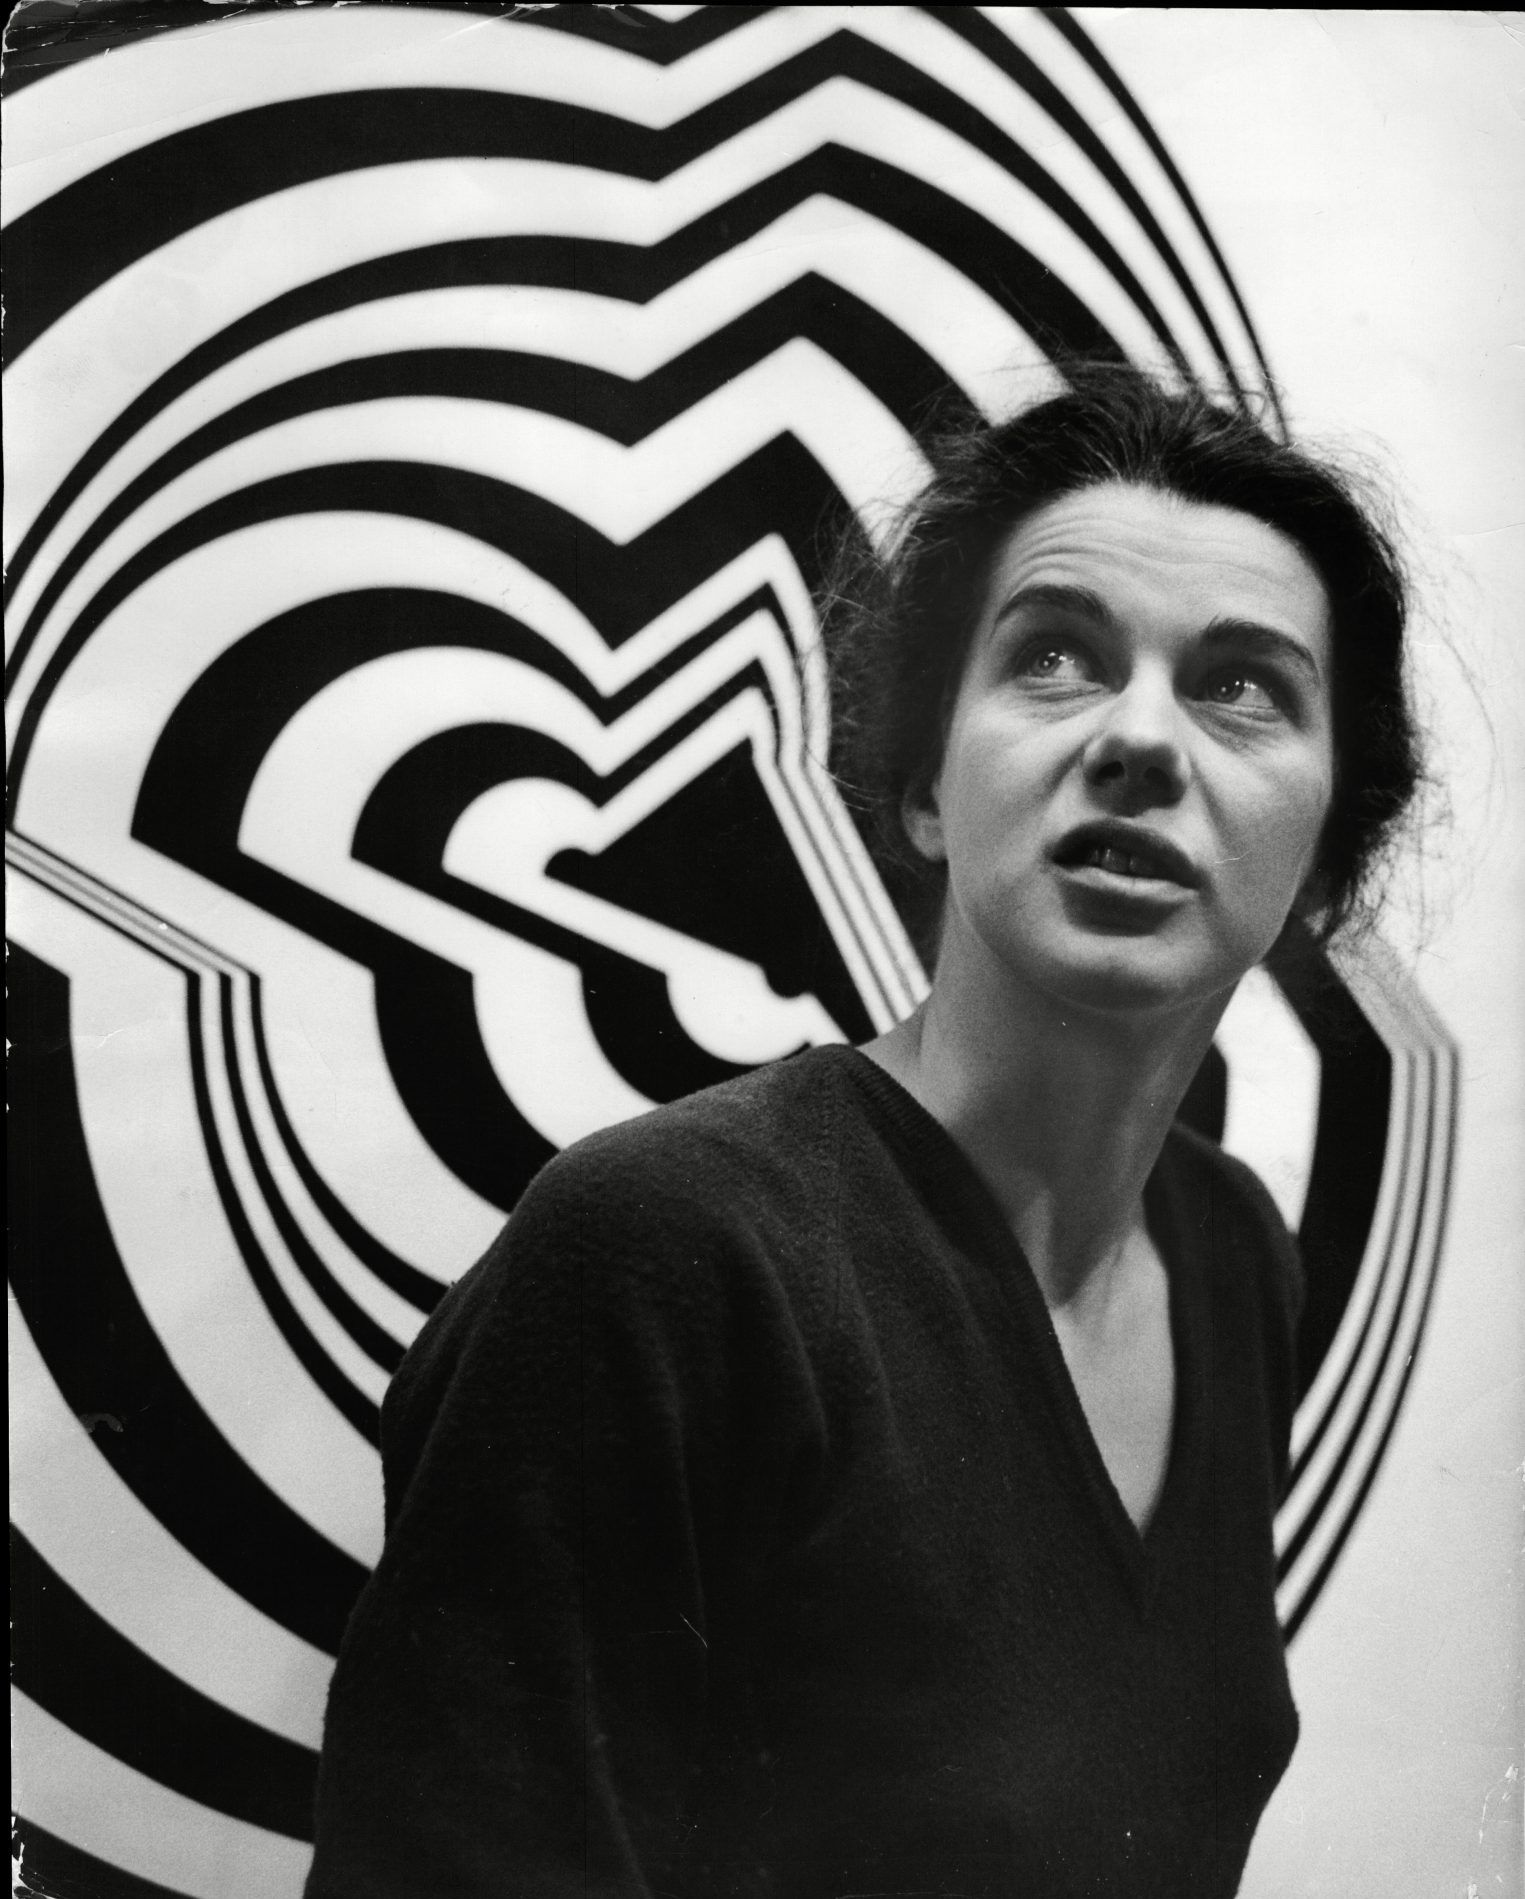 Bridget Riley S Artwork Is Here To Give Your Eyeballs A